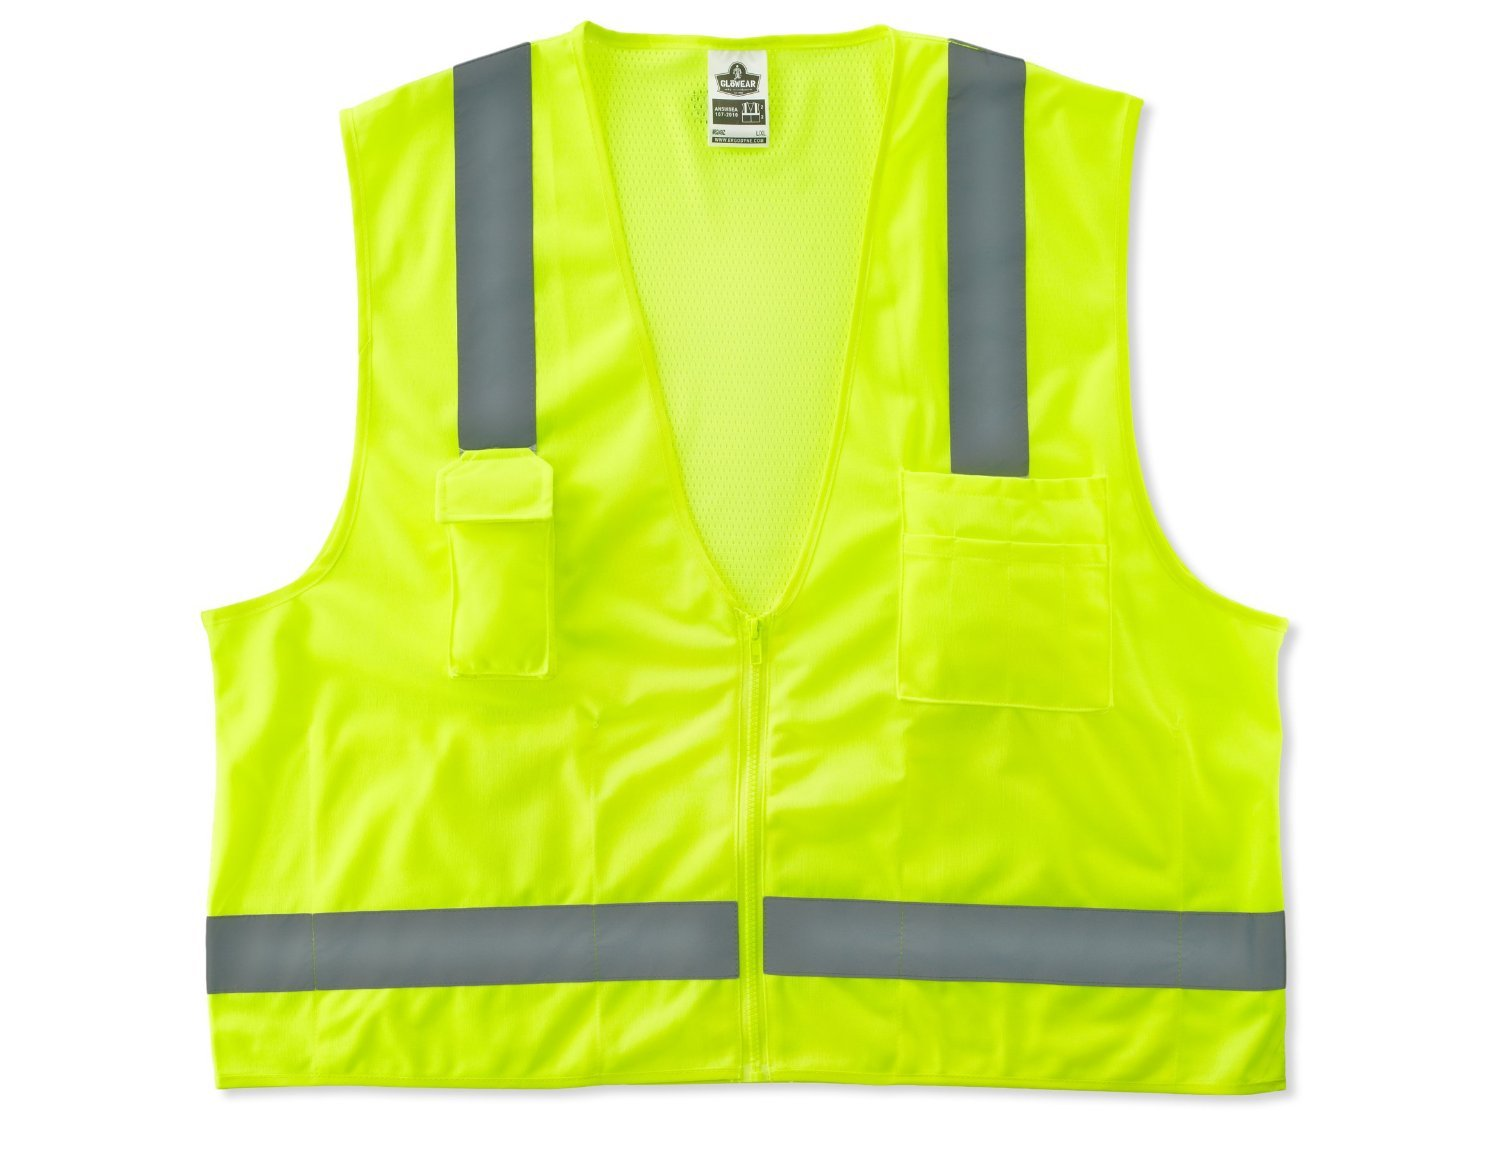 Ergodyne GloWear 8249Z ANSI Economy Lime Surveyors Reflective Safety Vest, Large/X-Large